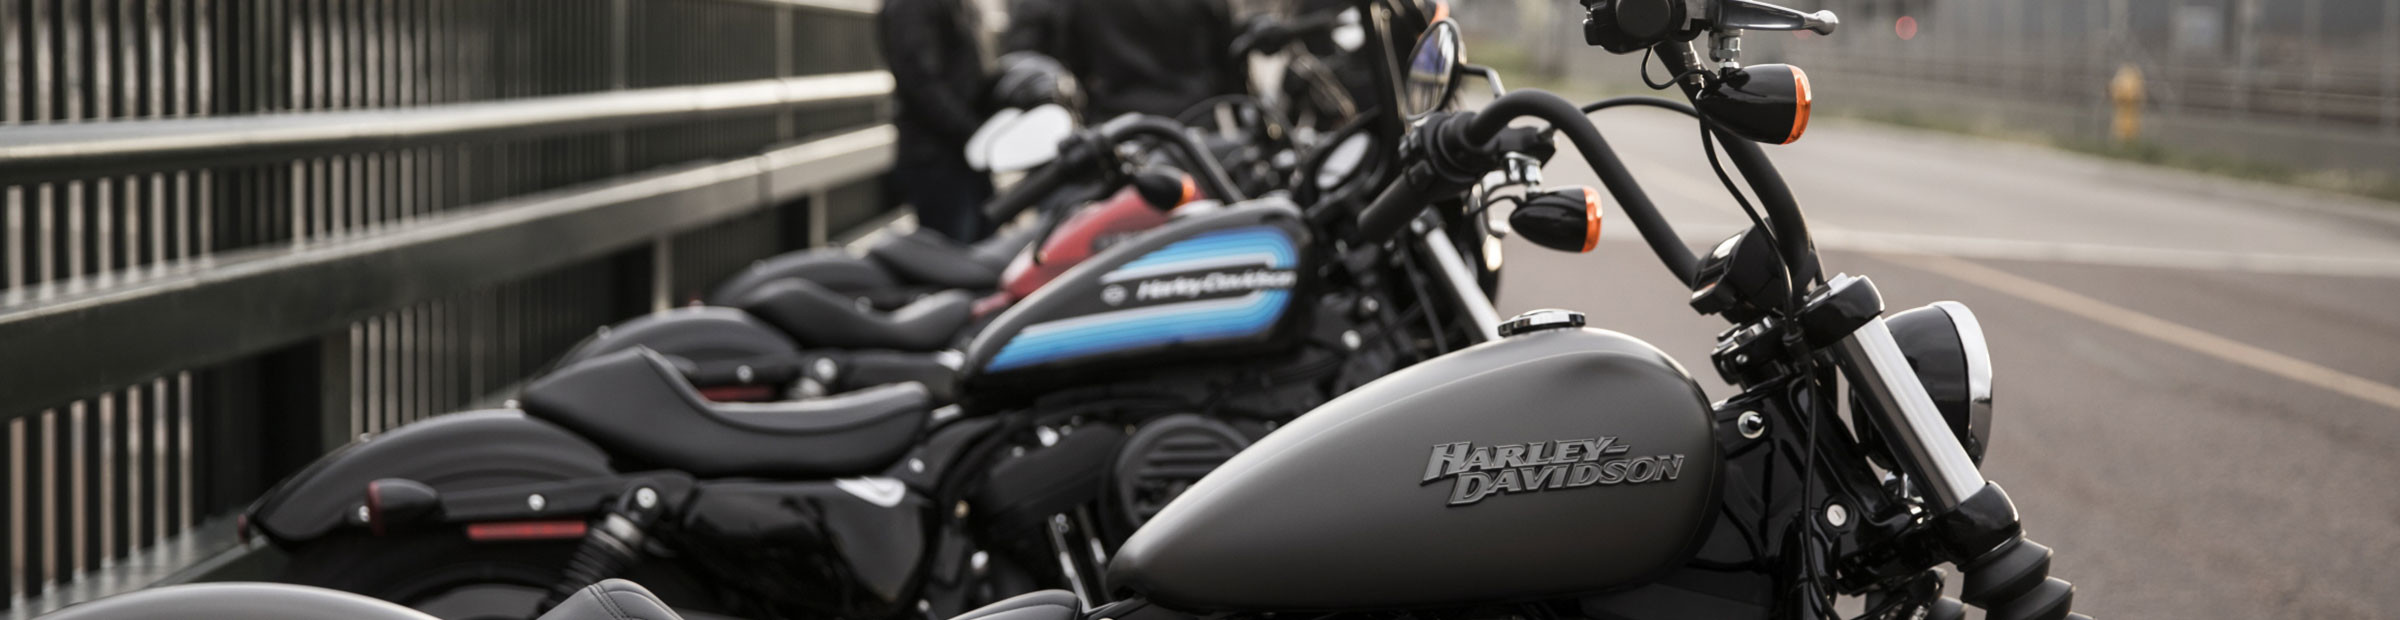 Trade-In Your Ride at Harley-Davidson® of New Port Richey